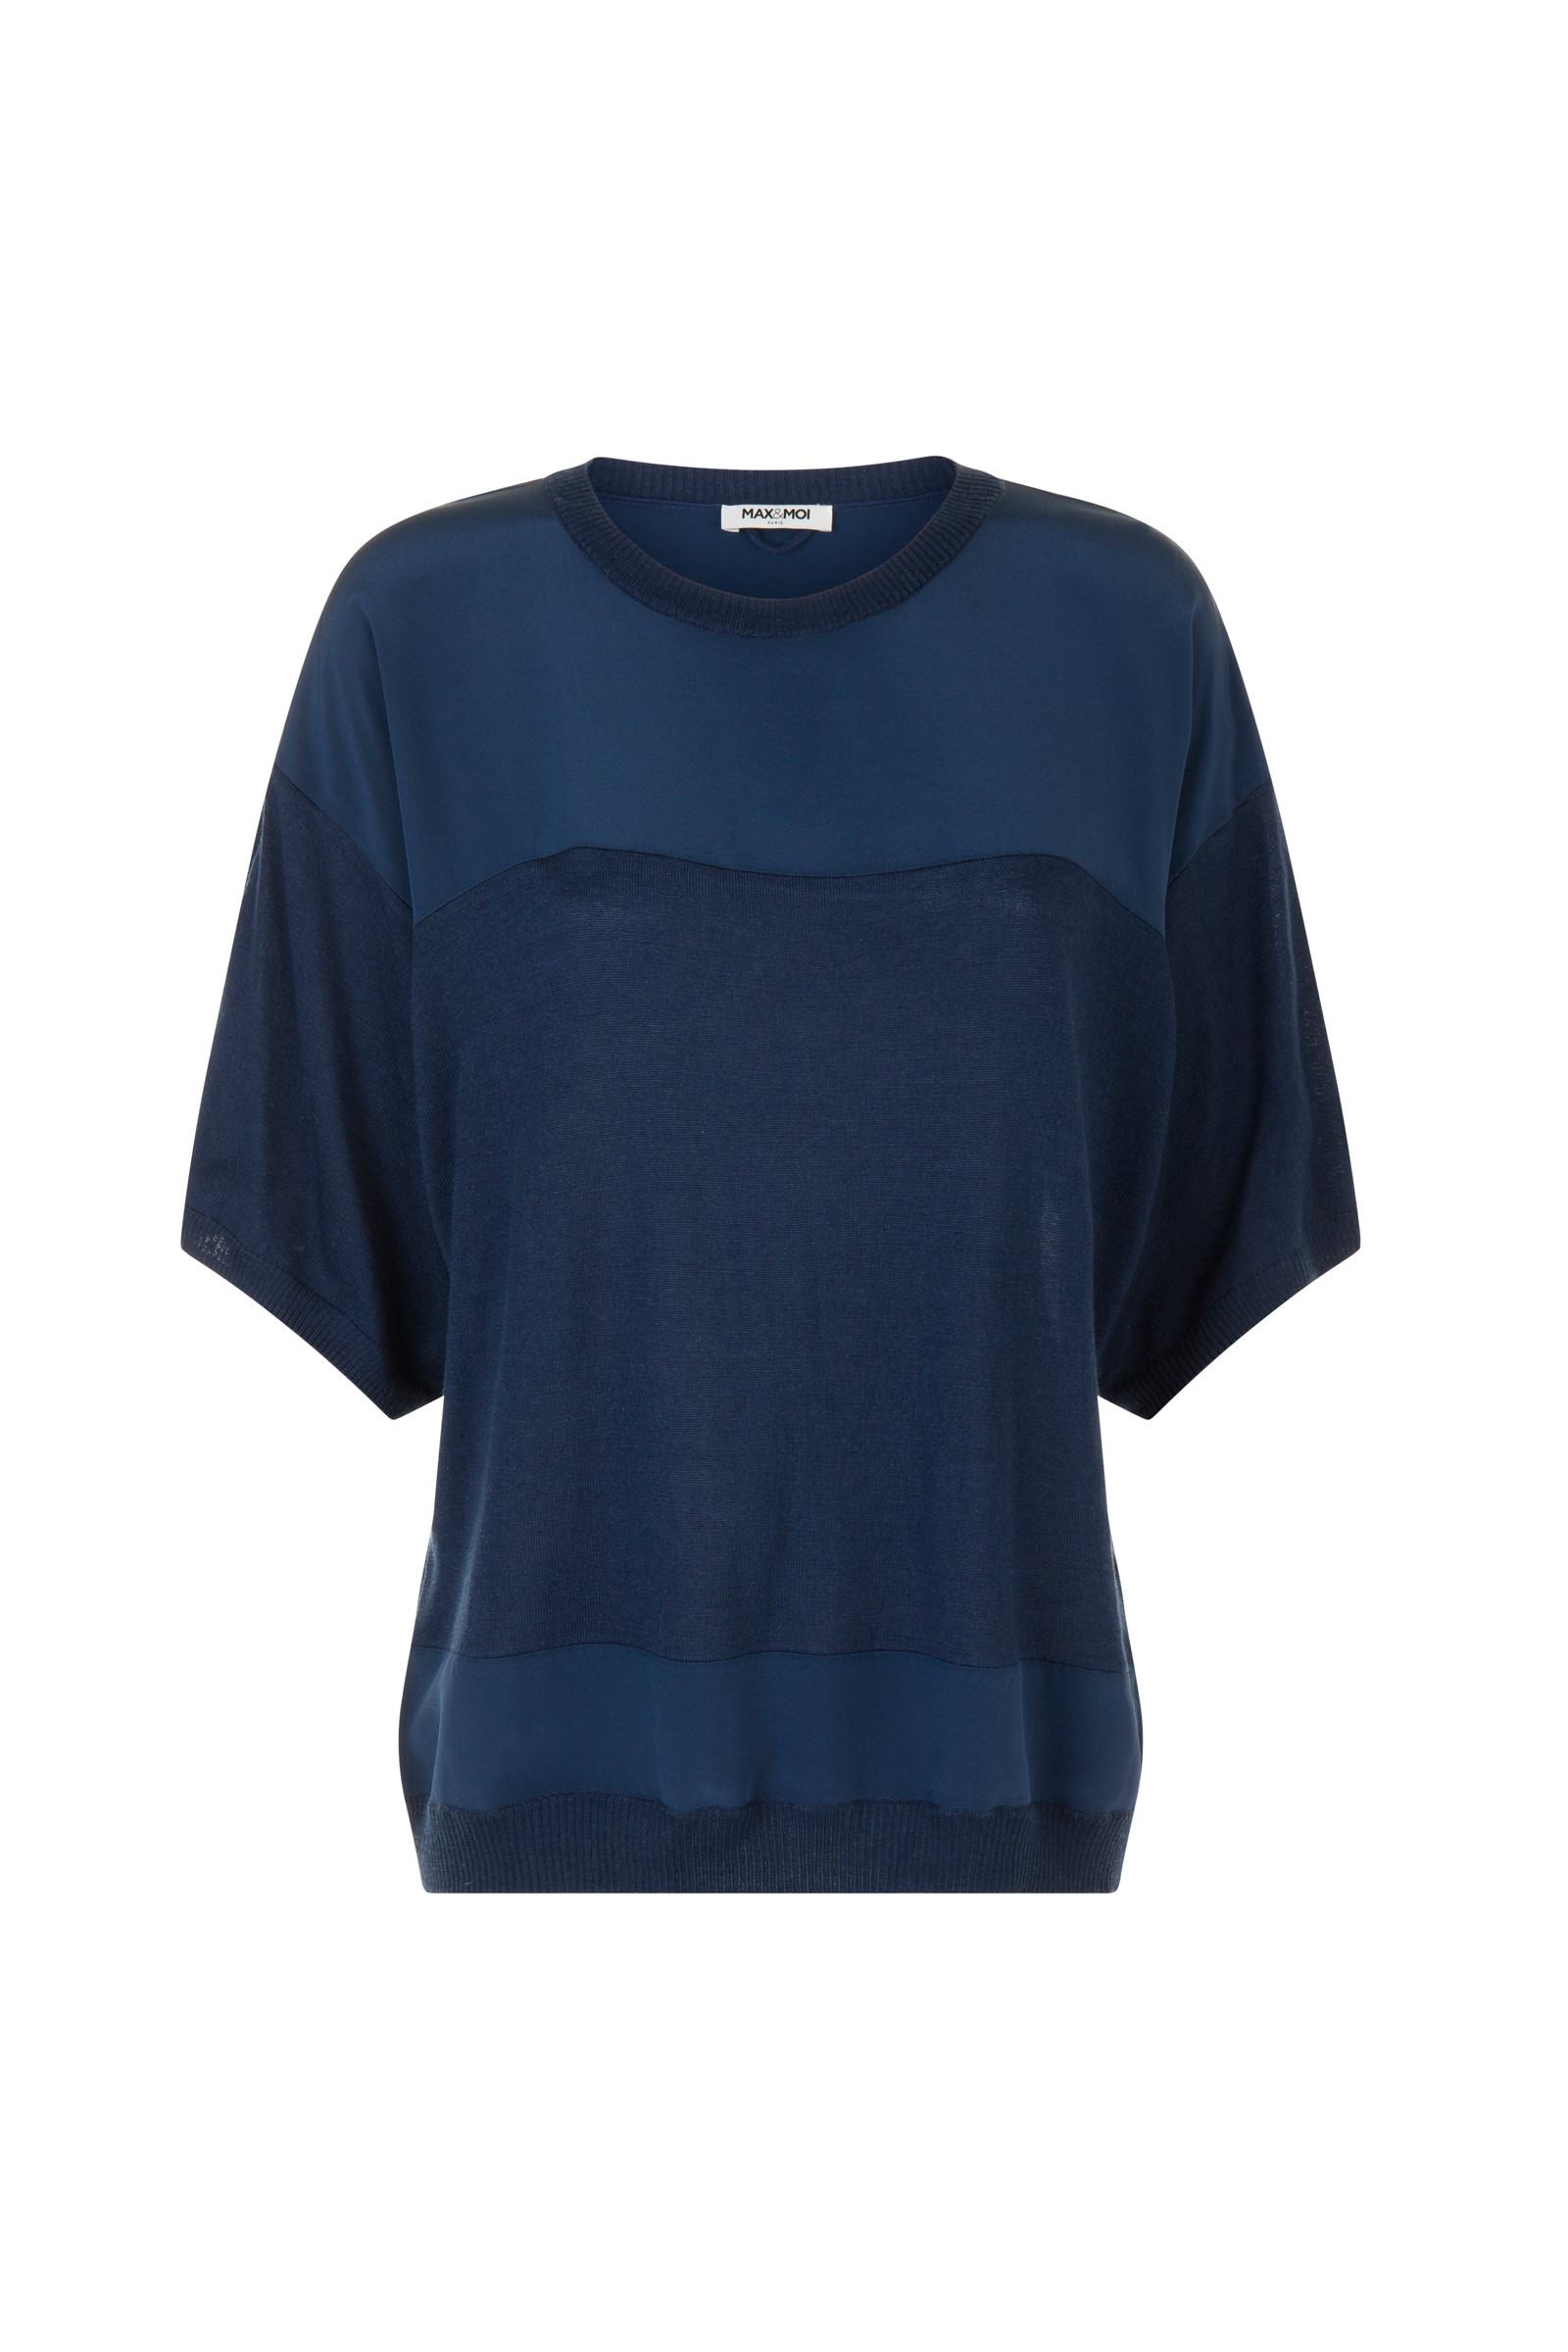 SWEATER HARCY NAVY